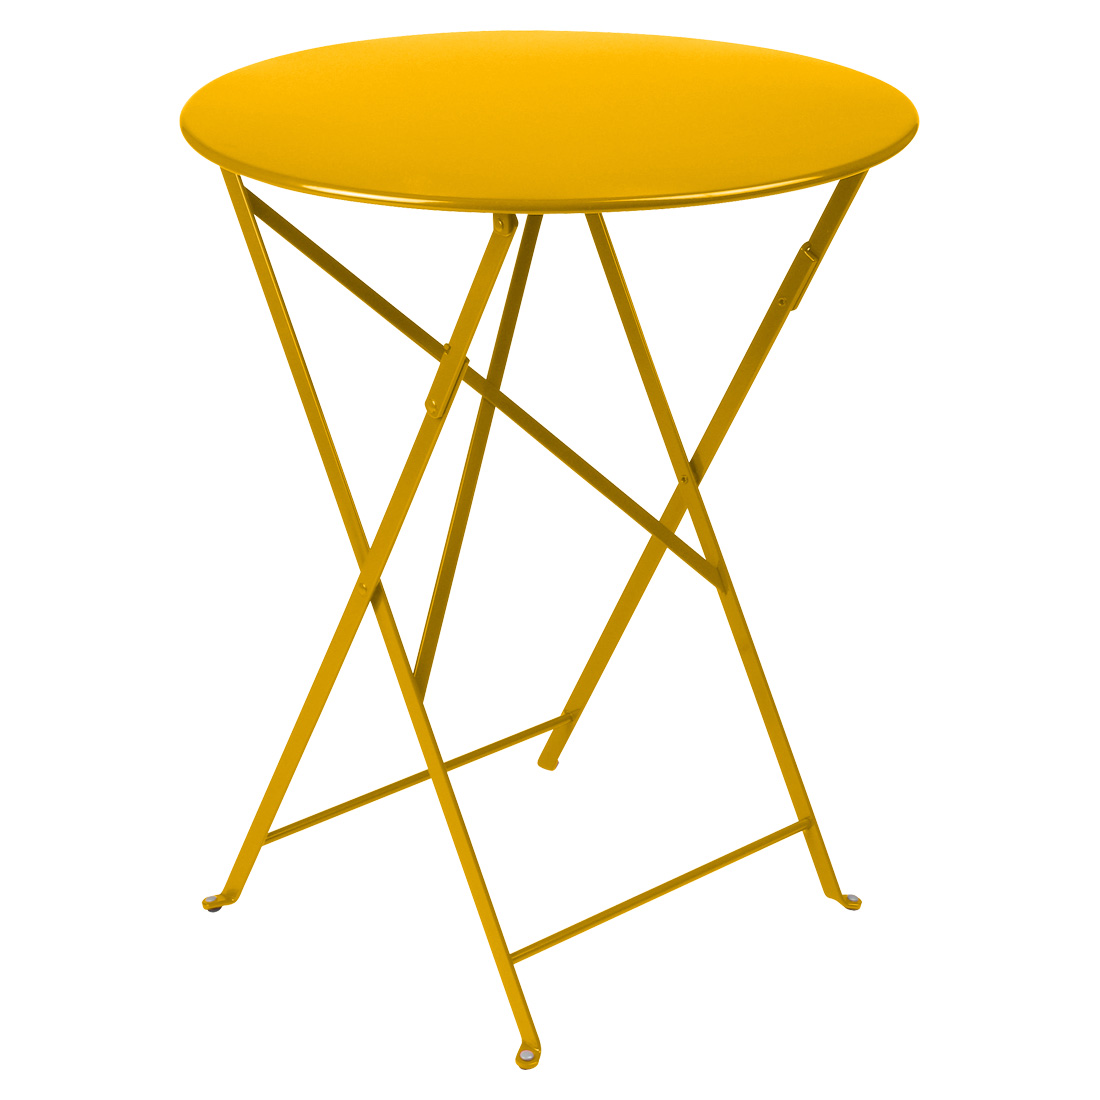 Bistro Round Table 60cm - Honey